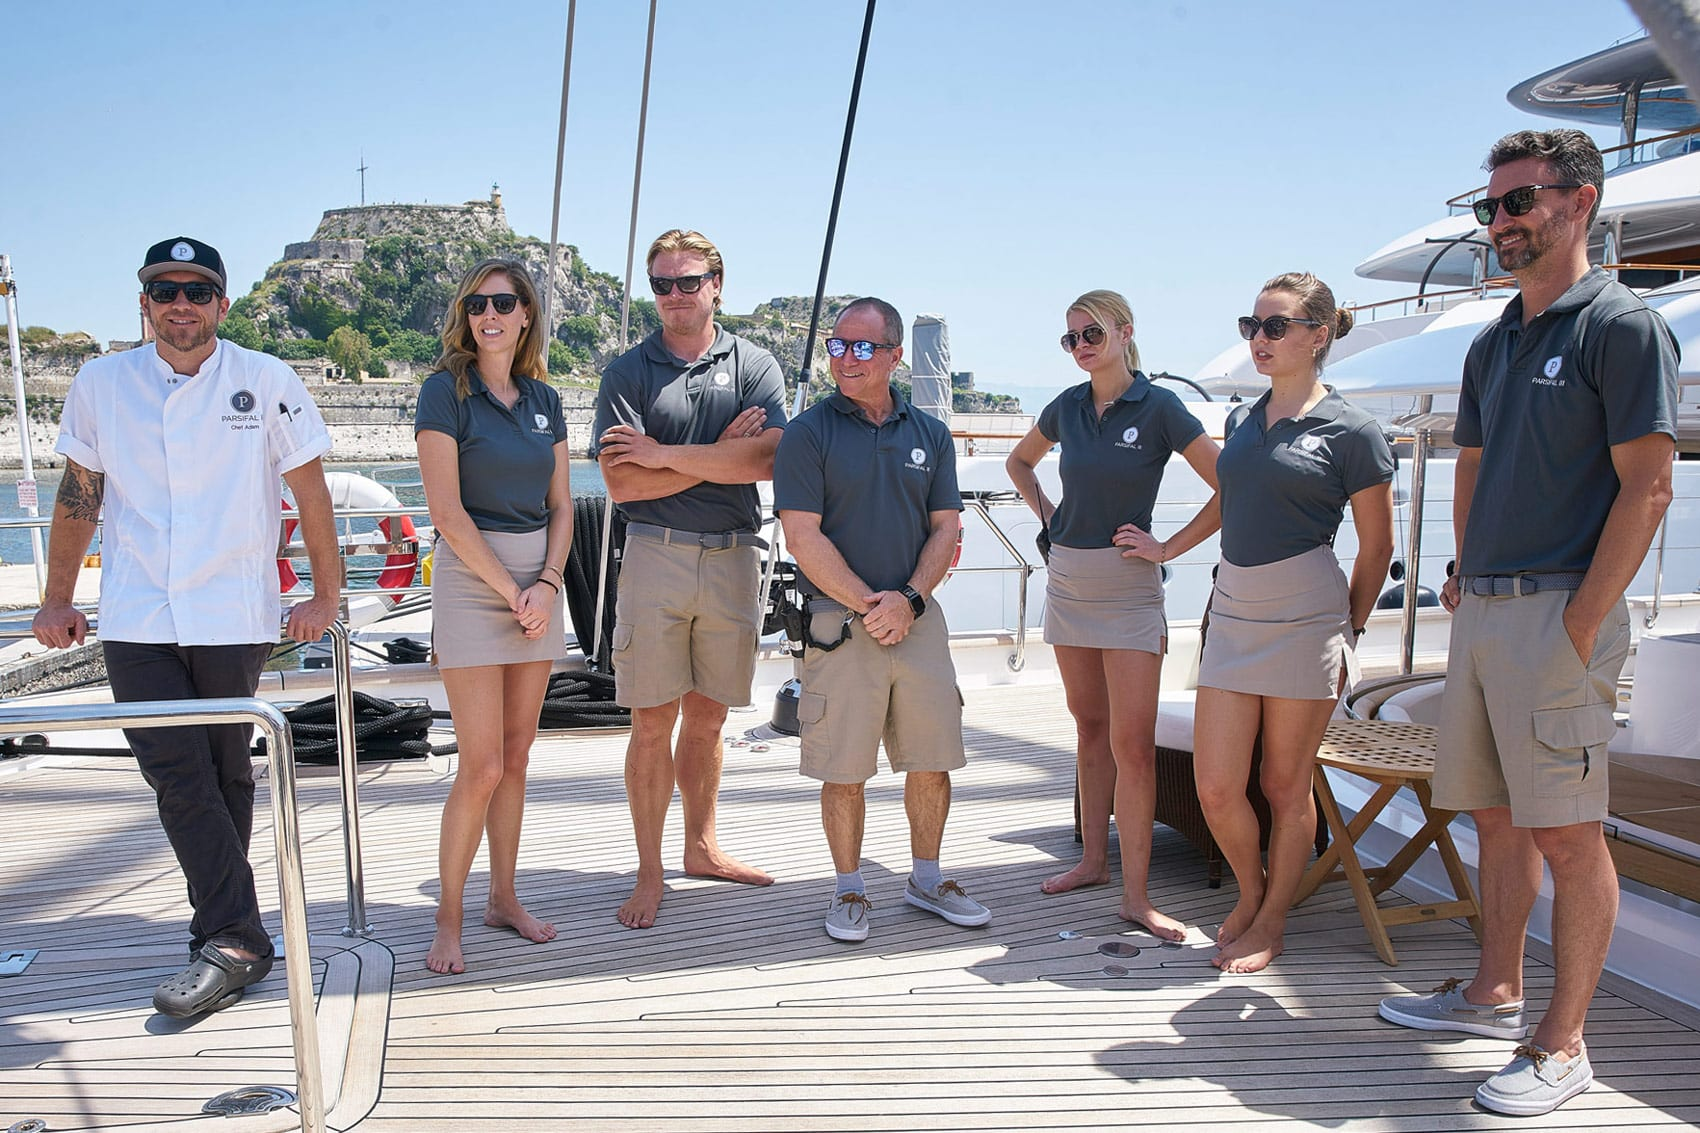 What To Expect From Below Deck Sailing Yacht Season 2 Episode 17?